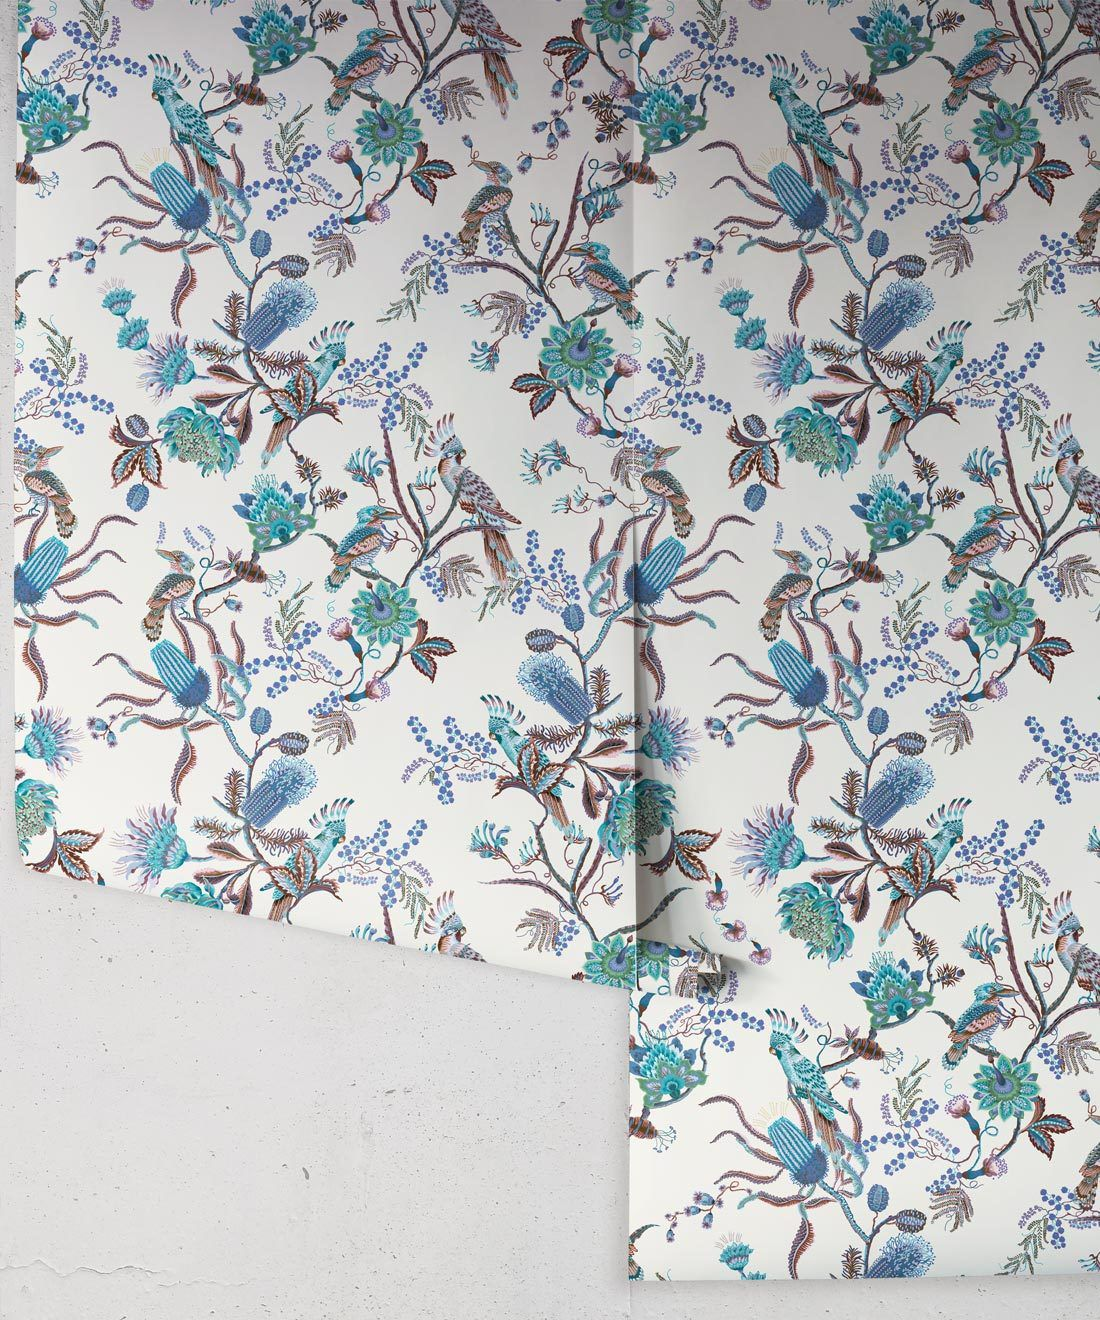 Matilda Wallpaper • Cockatoo, kookaburra • Australian Wallpaper • Milton & King USA • Blue Bell Roll